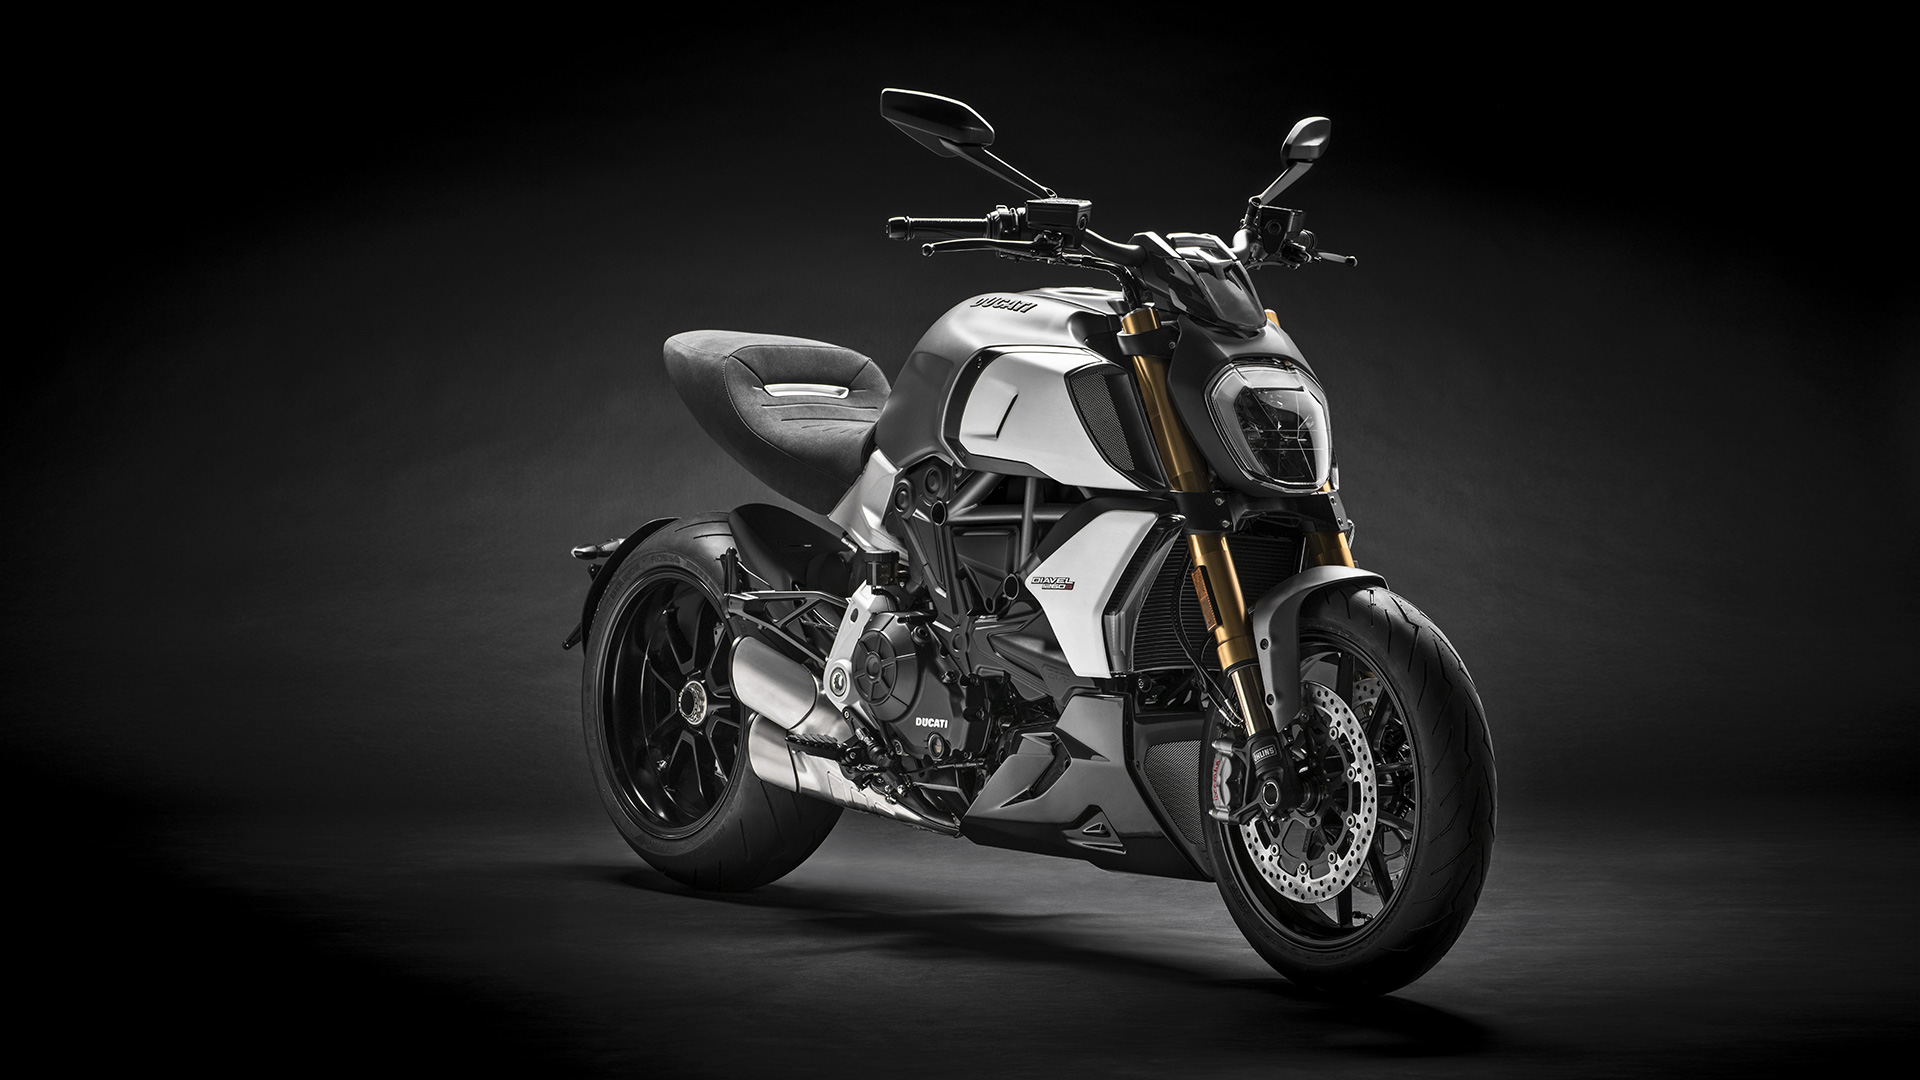 The new Diavel 1260 starts to roll out the Ducati factory